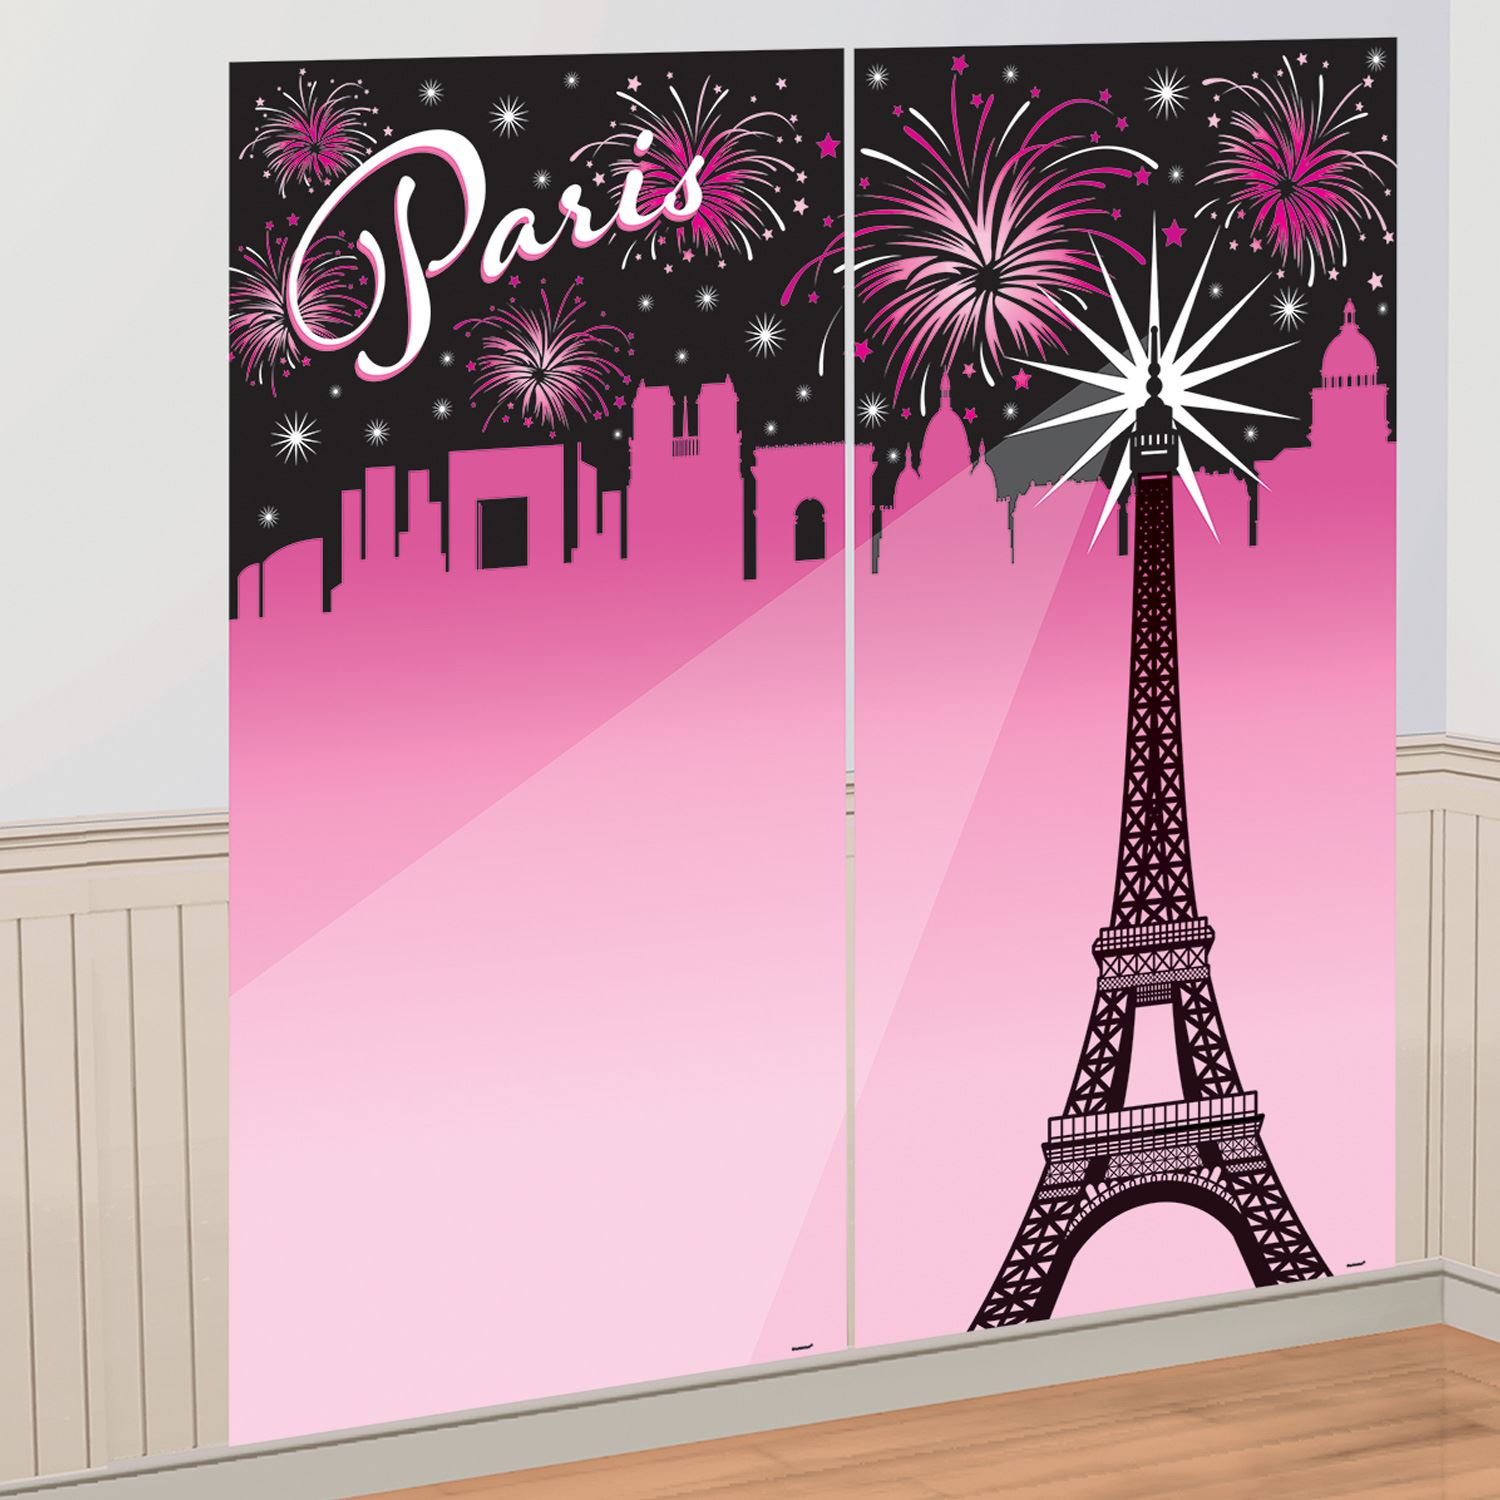 Compra Decoracion Pared Un Dia En Paris Y Recibelo En 24h - Decoracin-de-pared